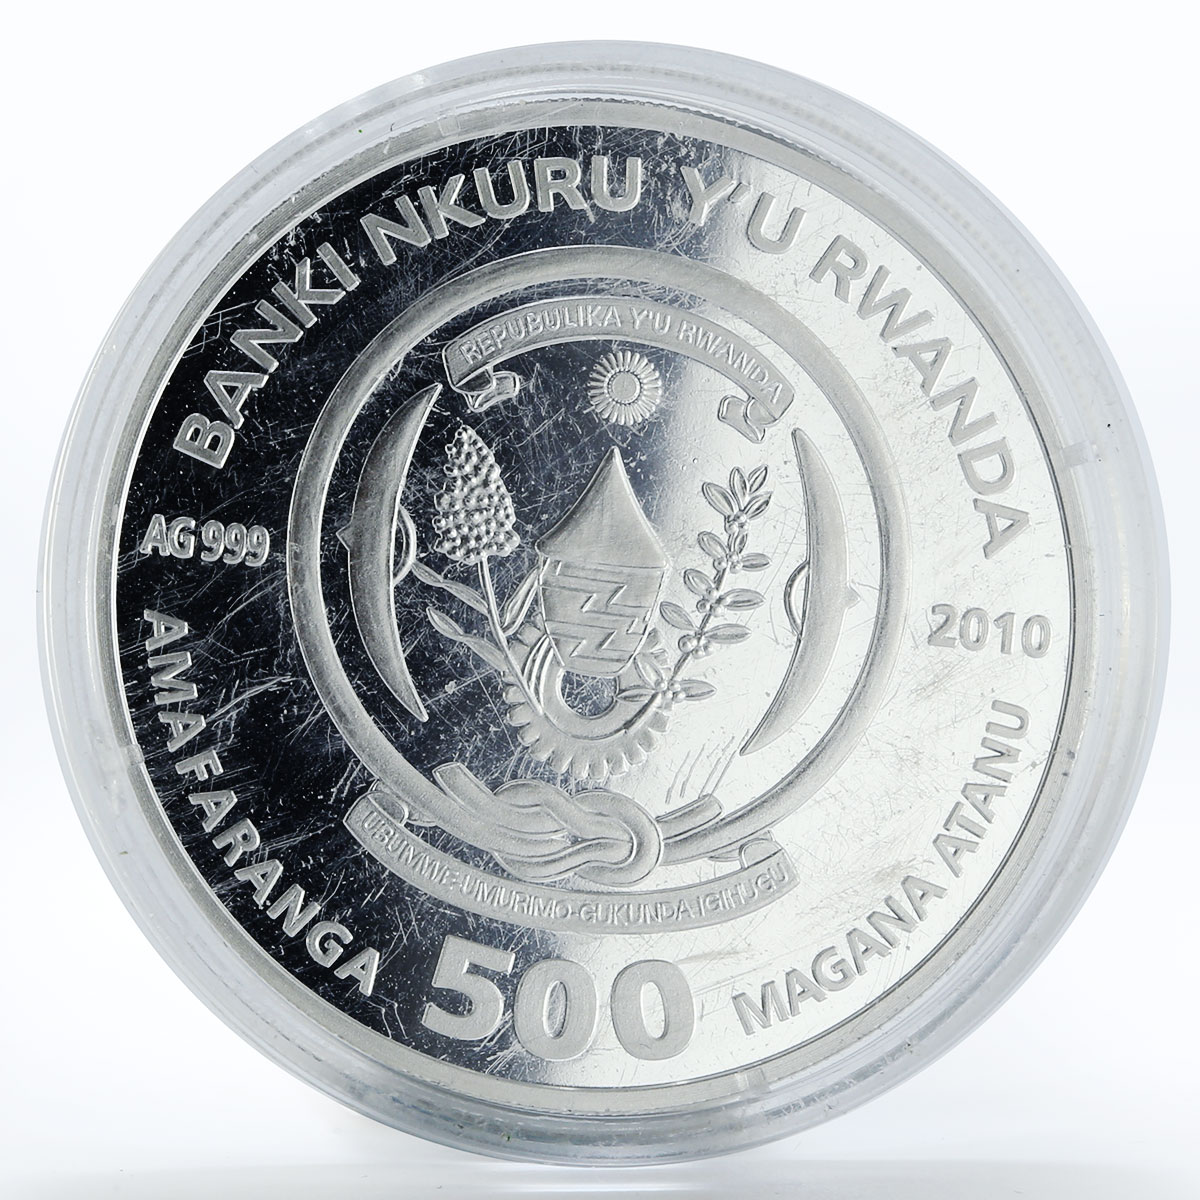 Rwanda 500 francs Chelonia Mydas turtle colored silver coin 2010